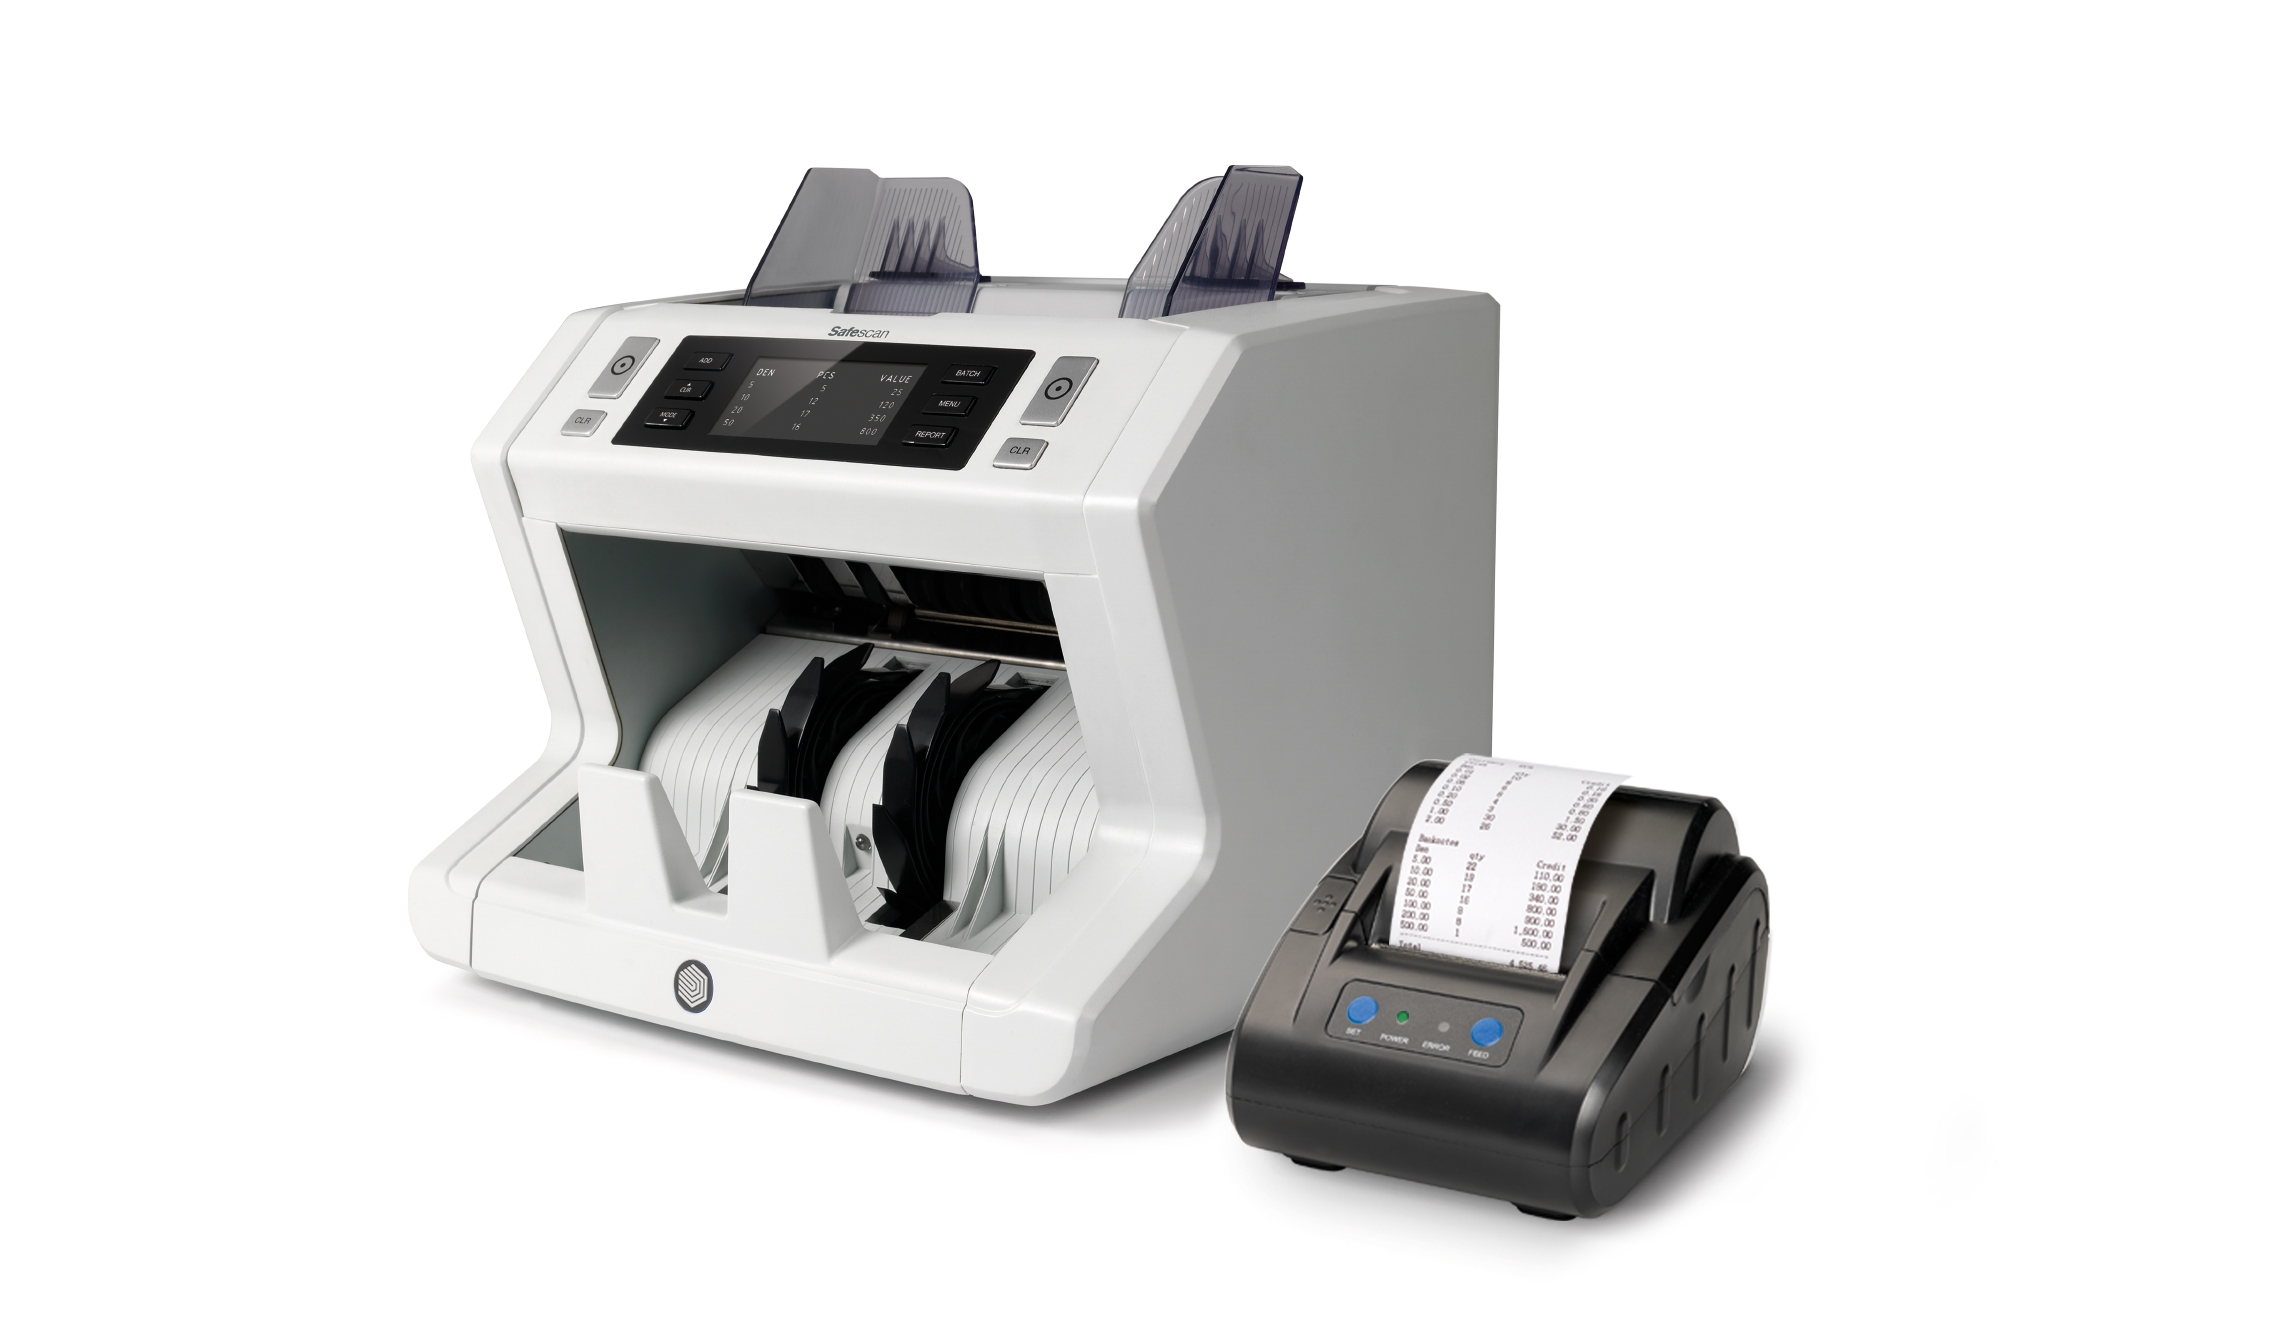 safescan-tp-230-thermal-printer